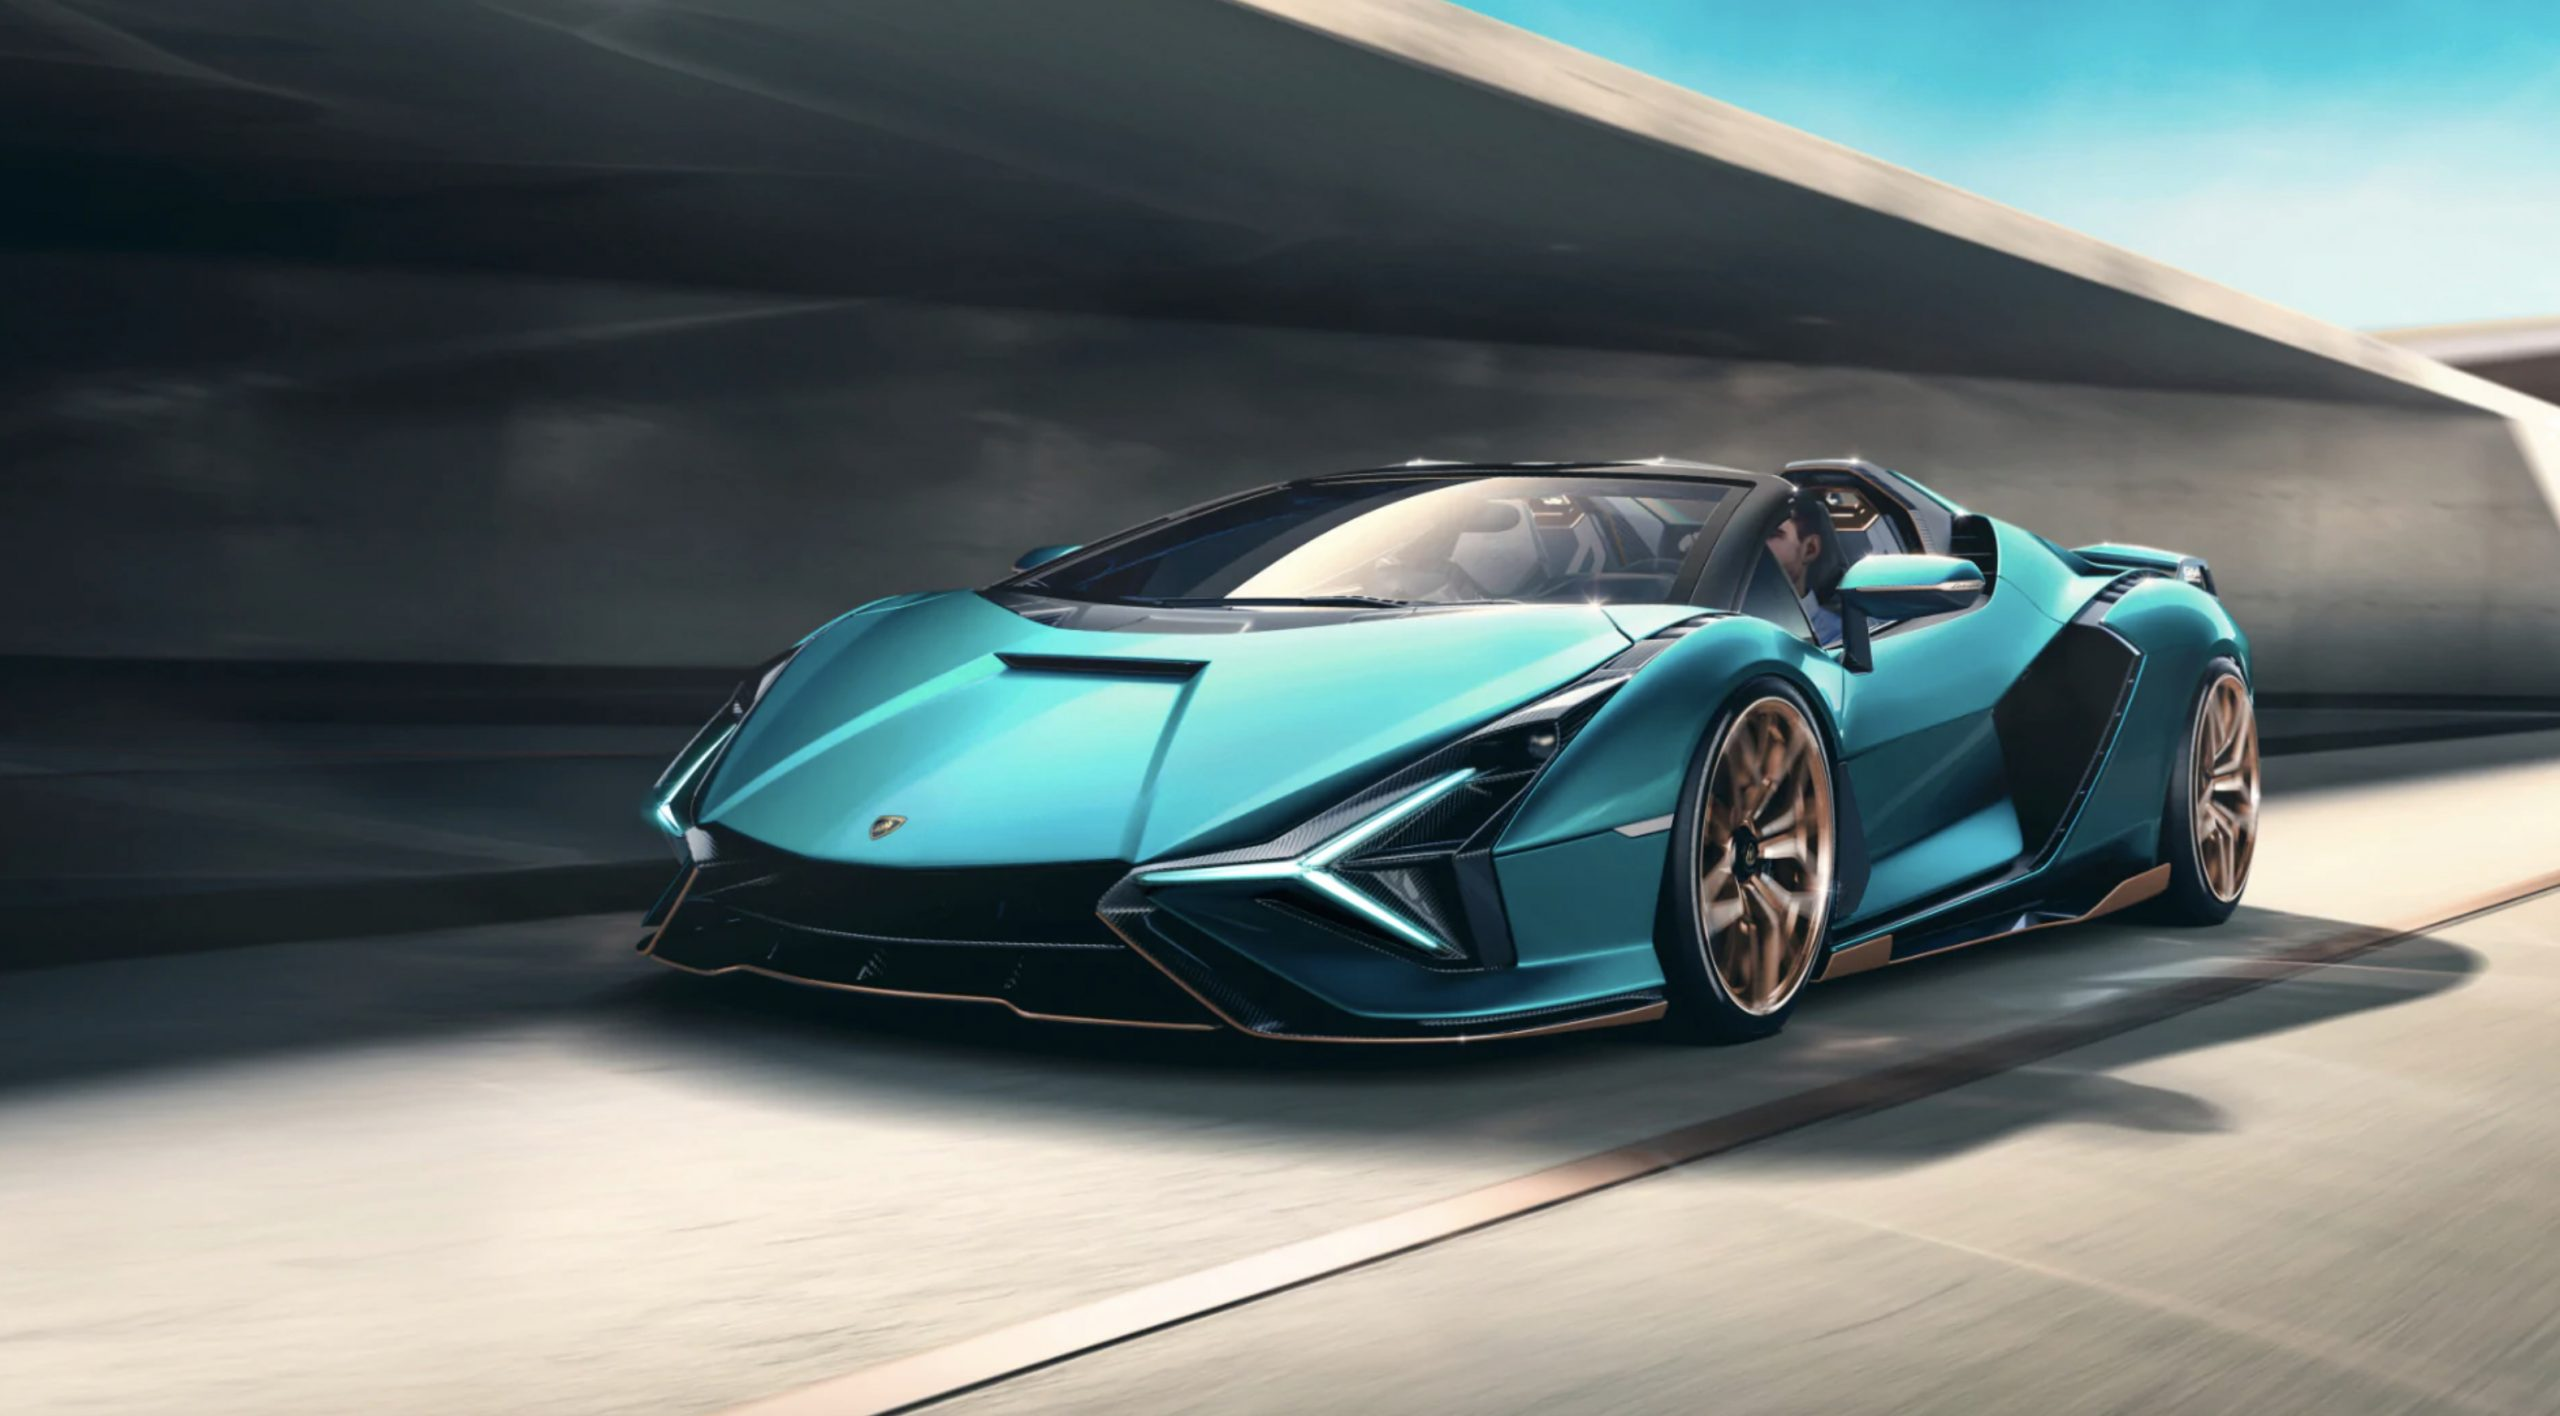 807-HP Lamborghini Sián Roadster Revealed, but It's Already Sold Out